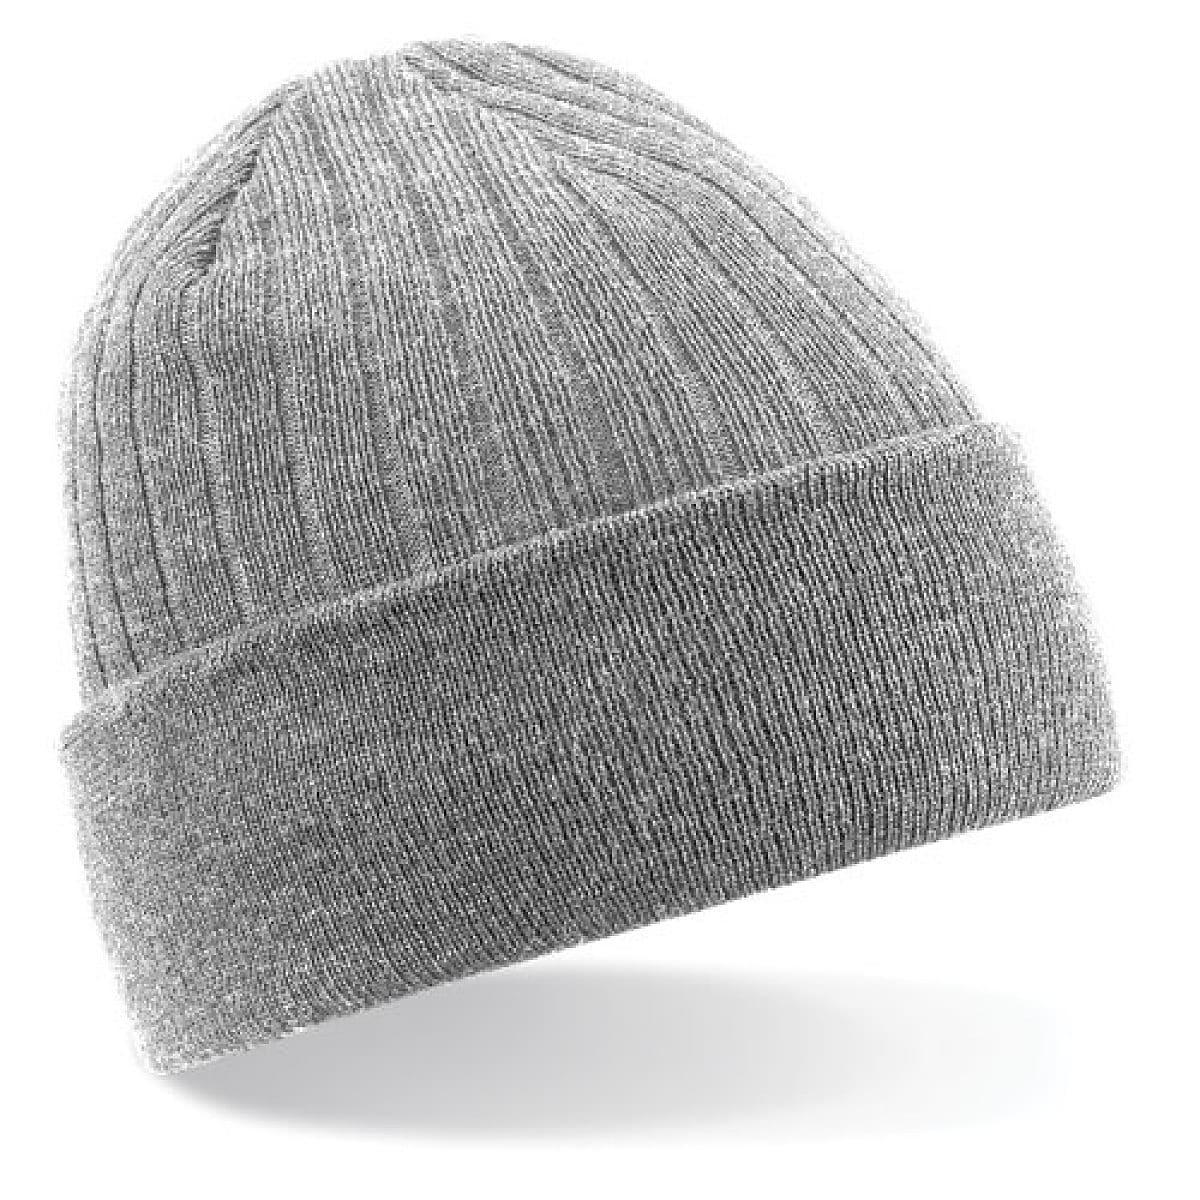 Beechfield Thinsulate Beanie Hat in Heather Grey (Product Code: B447)